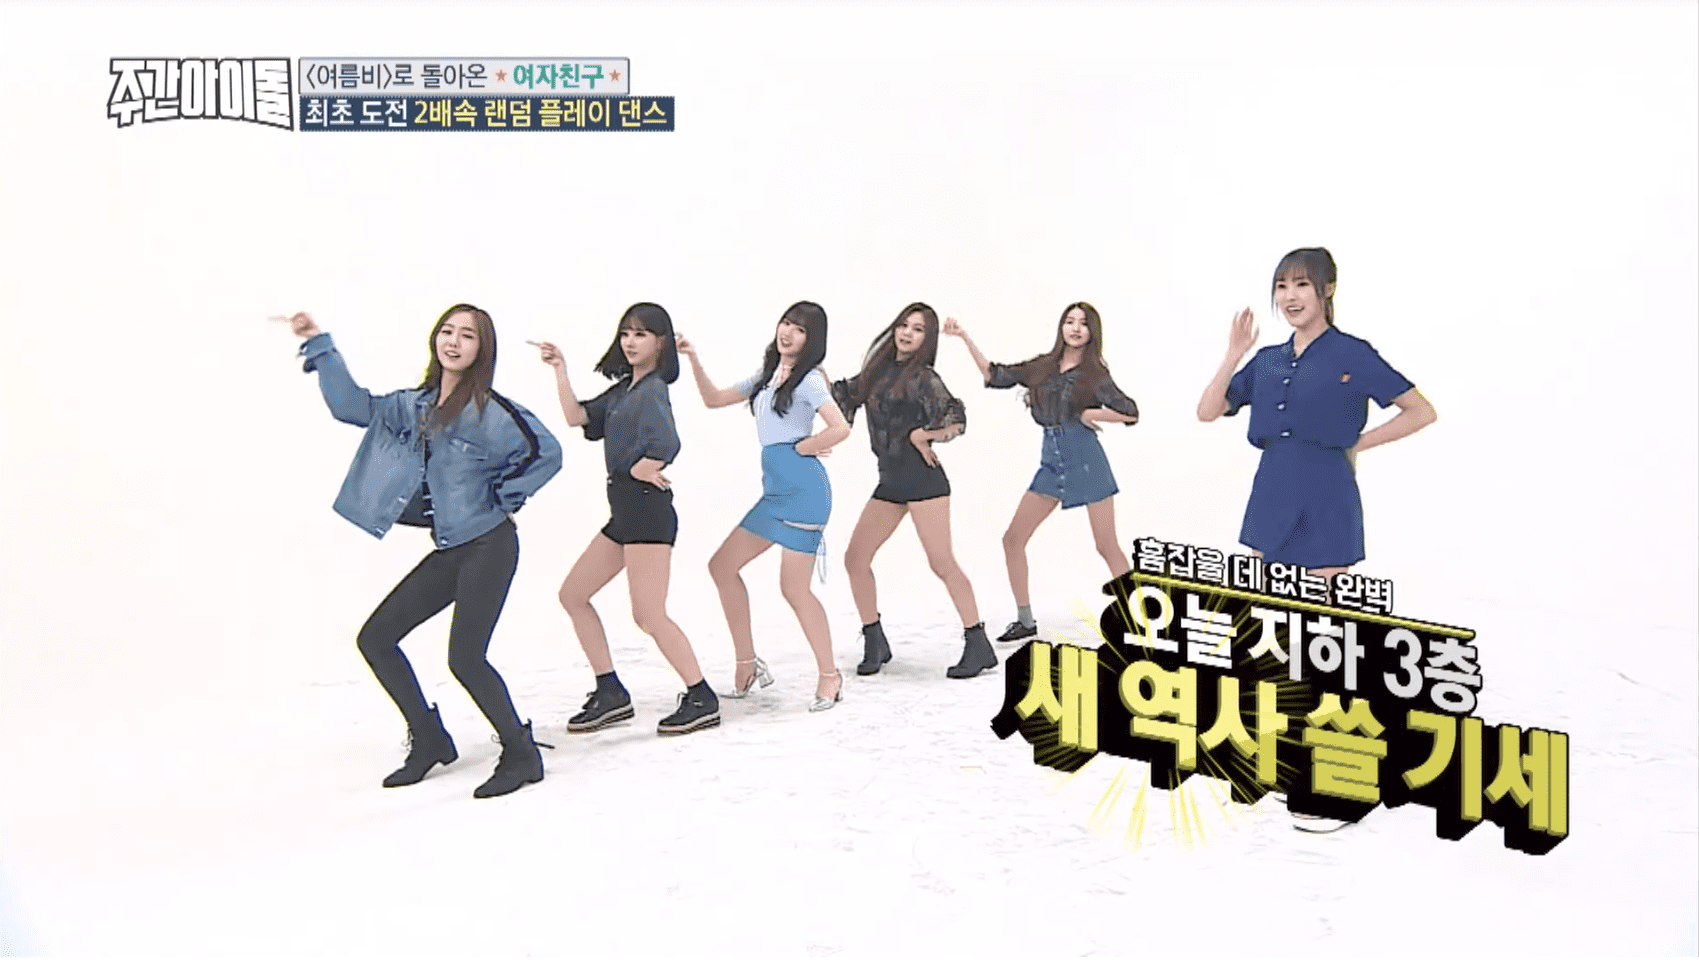 Watch: GFRIEND Is The First Group Ever To Attempt Random Play Dance At 2X Speed On Weekly Idol